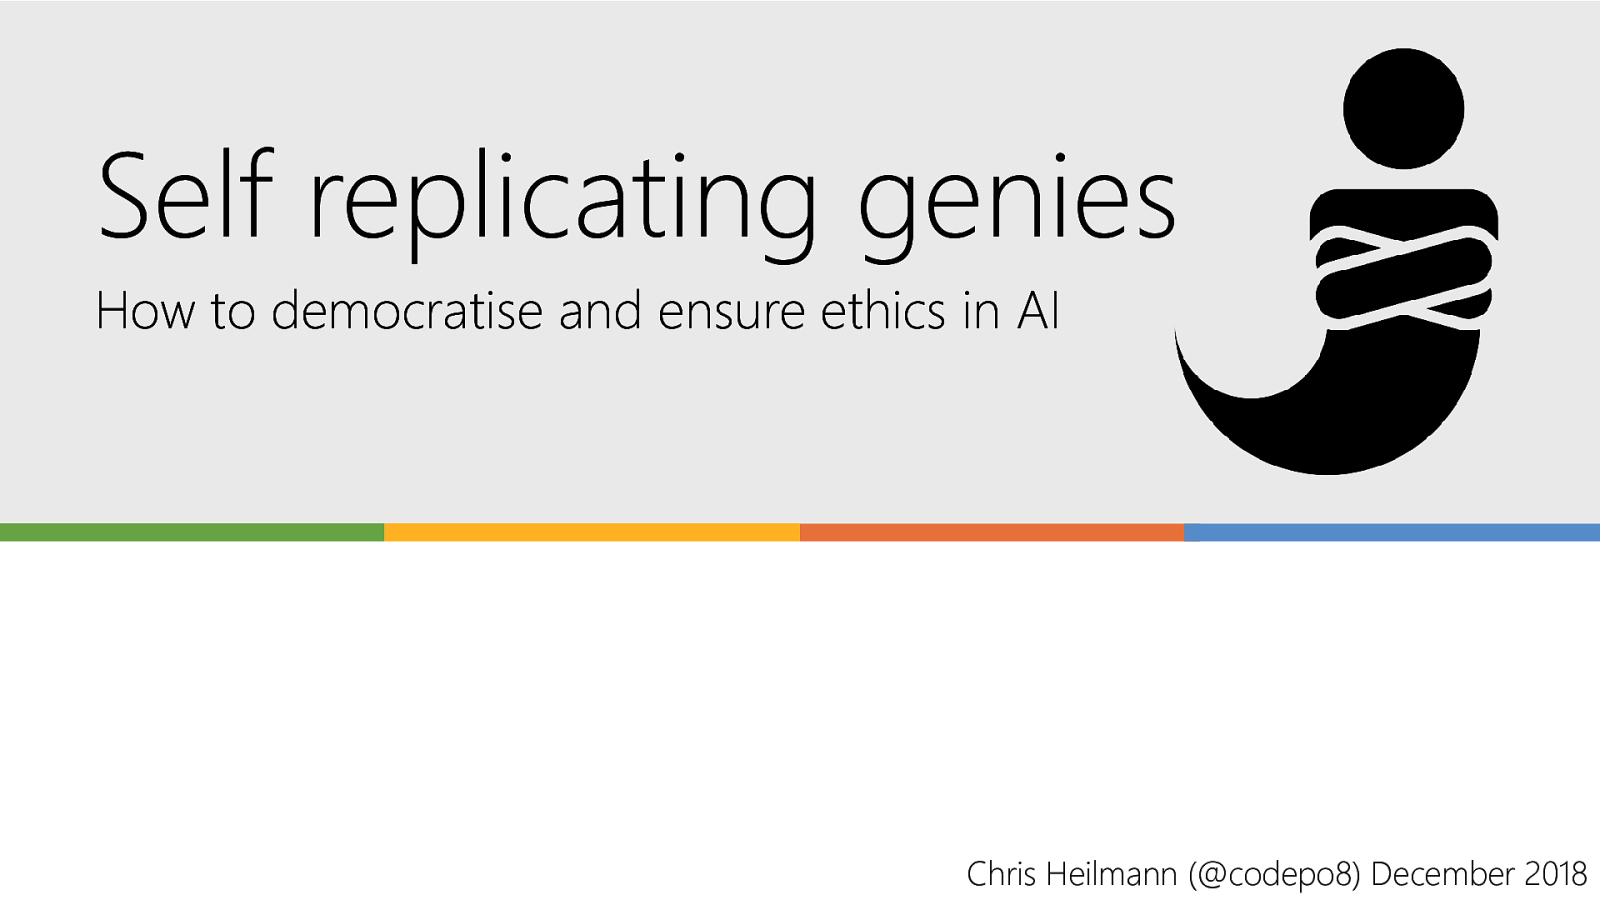 Self replicating genies - How to democratise and ensure ethics in AI